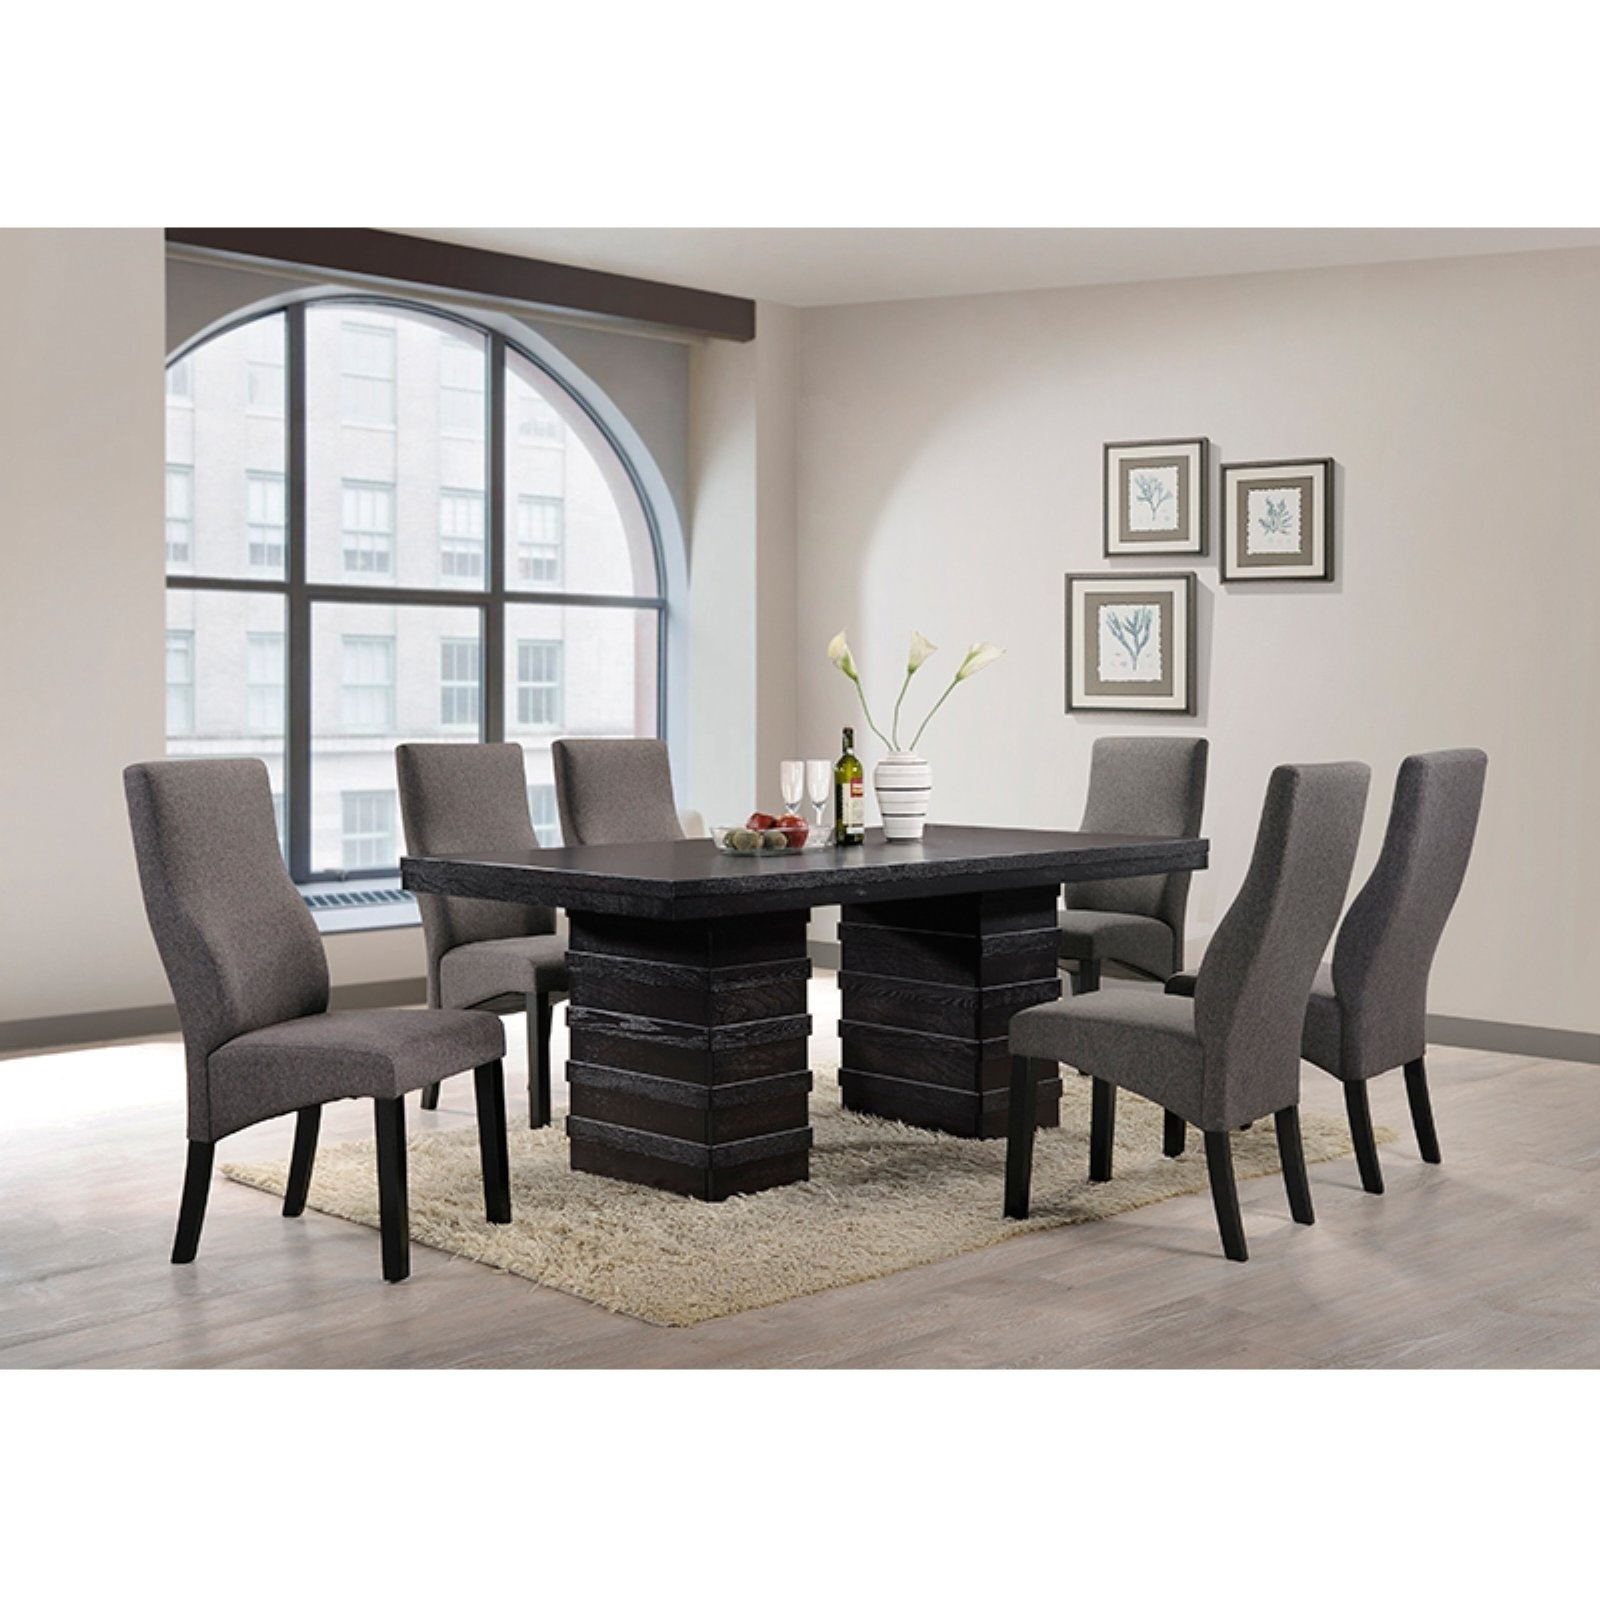 K & B Furniture Norwood Dining Table – Walmart Throughout Preferred Norwood 9 Piece Rectangle Extension Dining Sets (View 7 of 25)